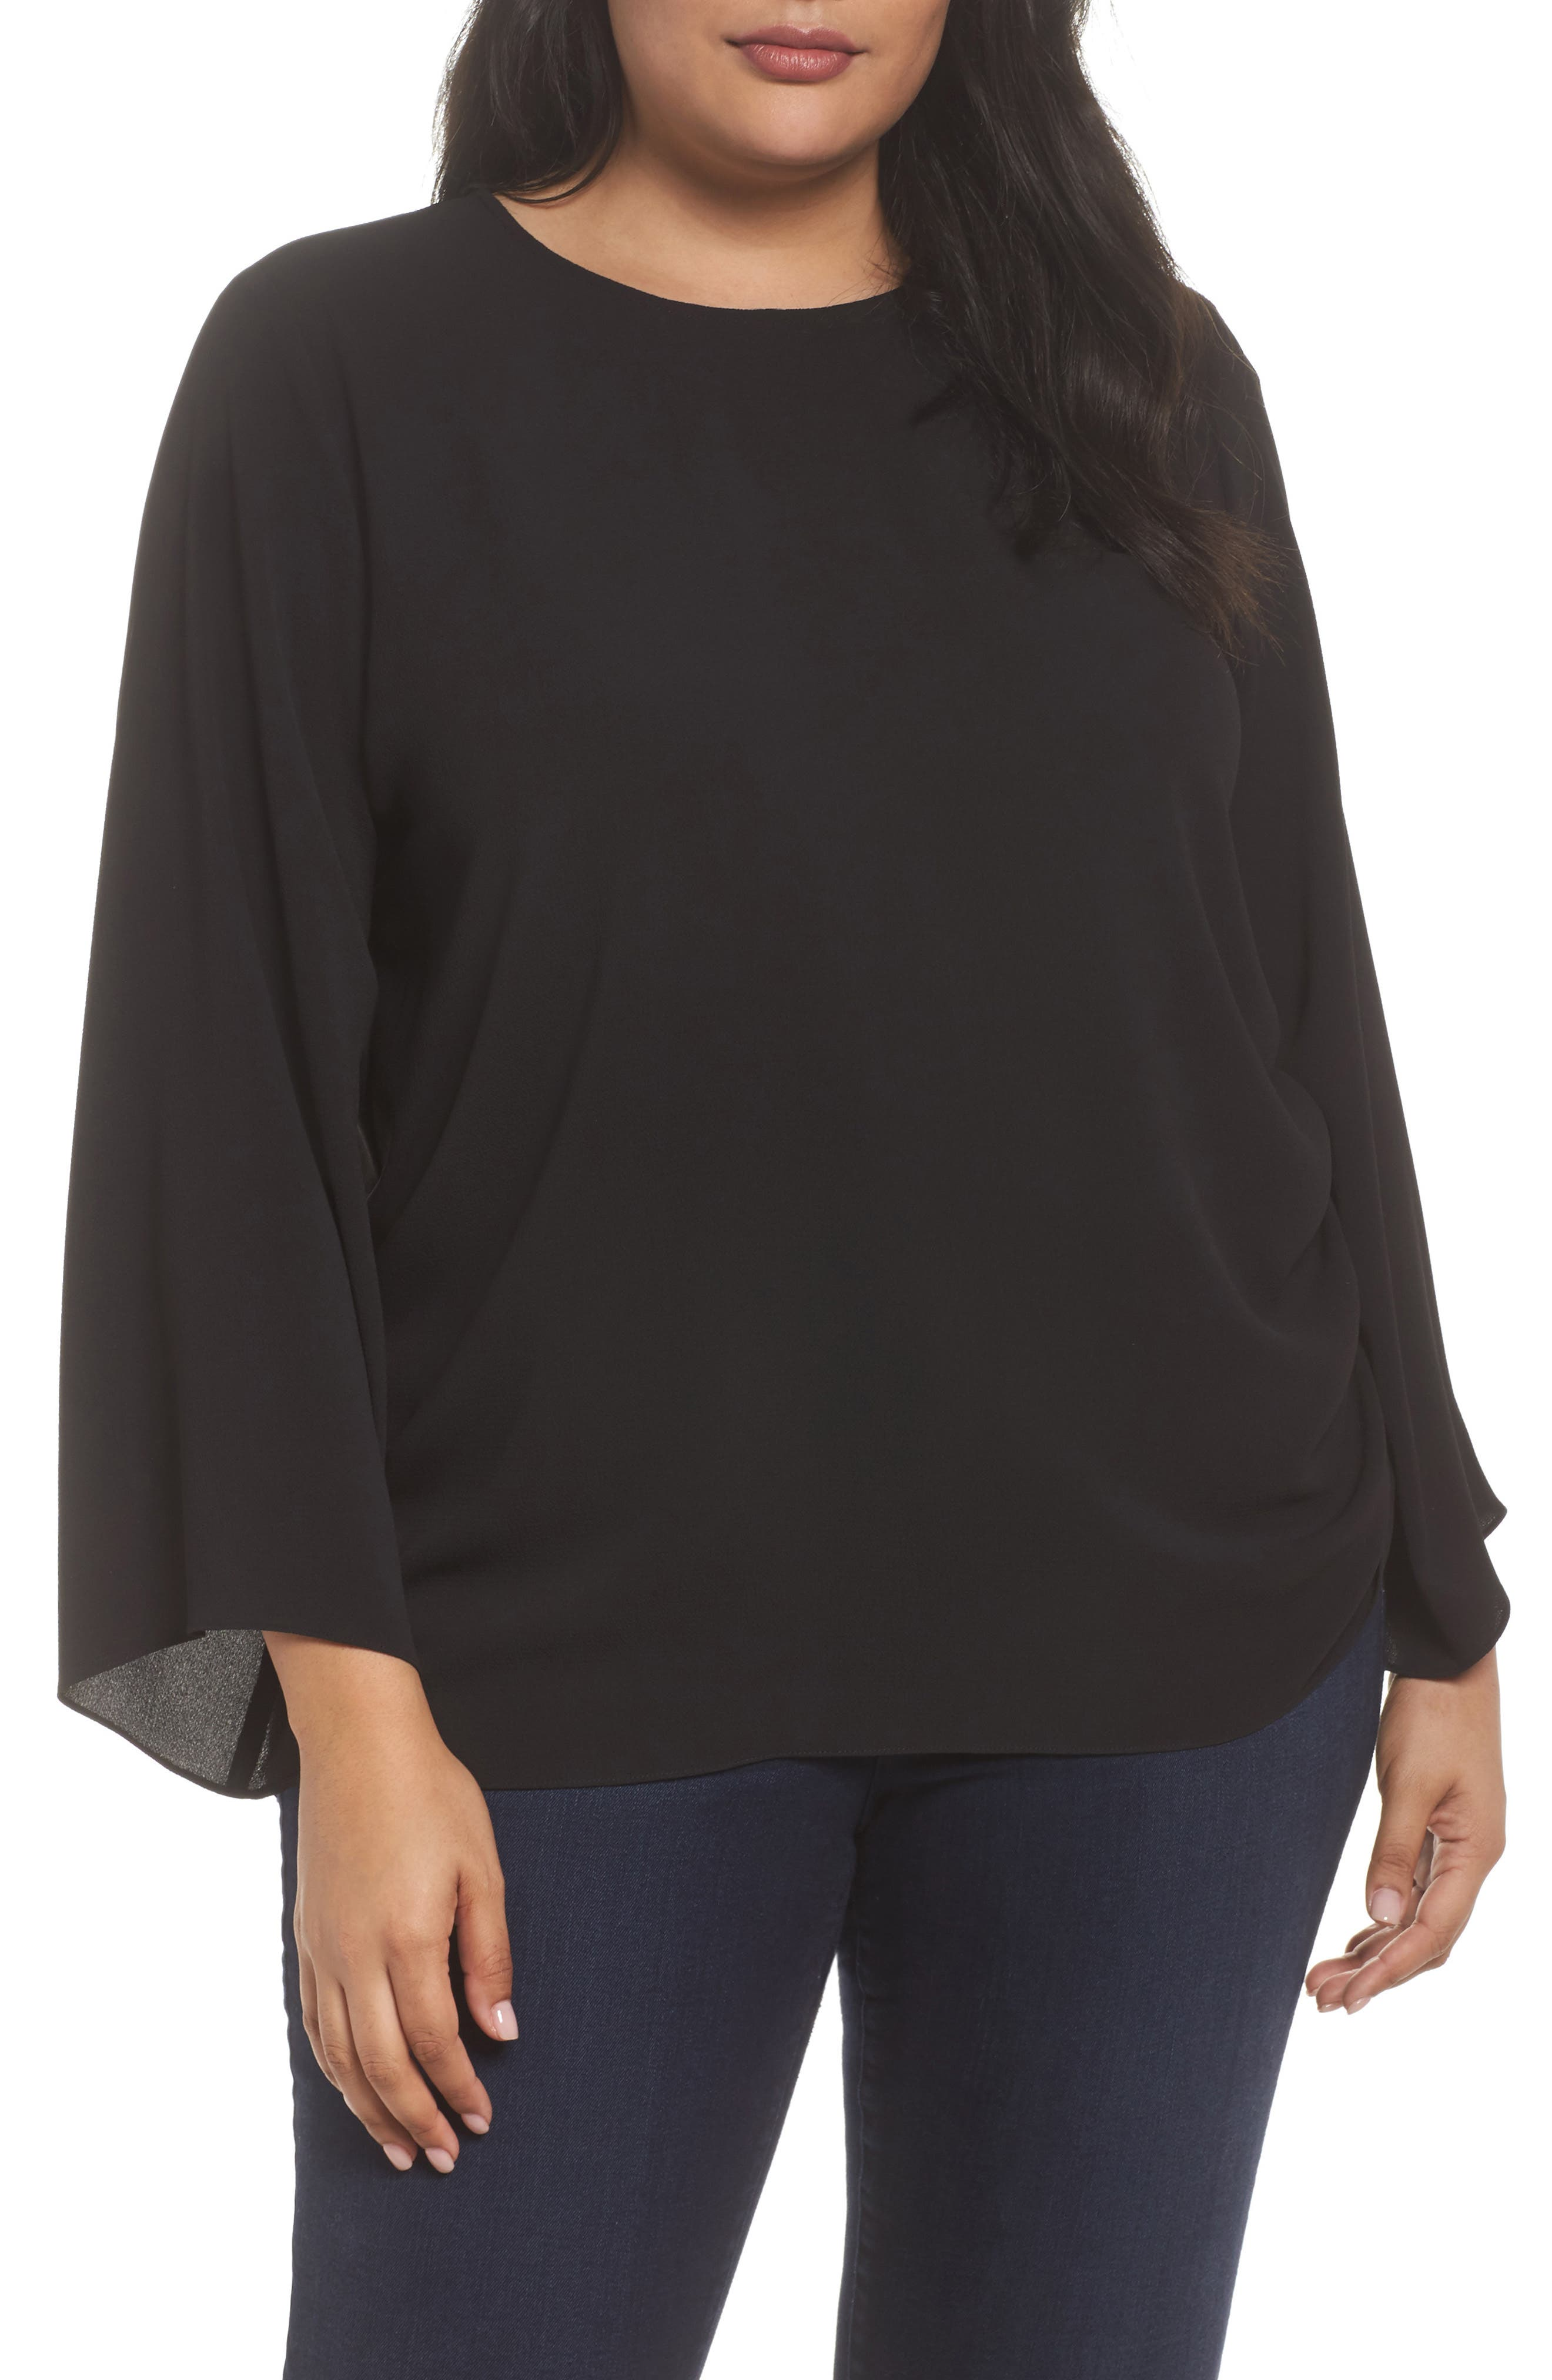 Alternate Image 1 Selected - Vince Camuto Drawstring Side Blouse (Plus Size)